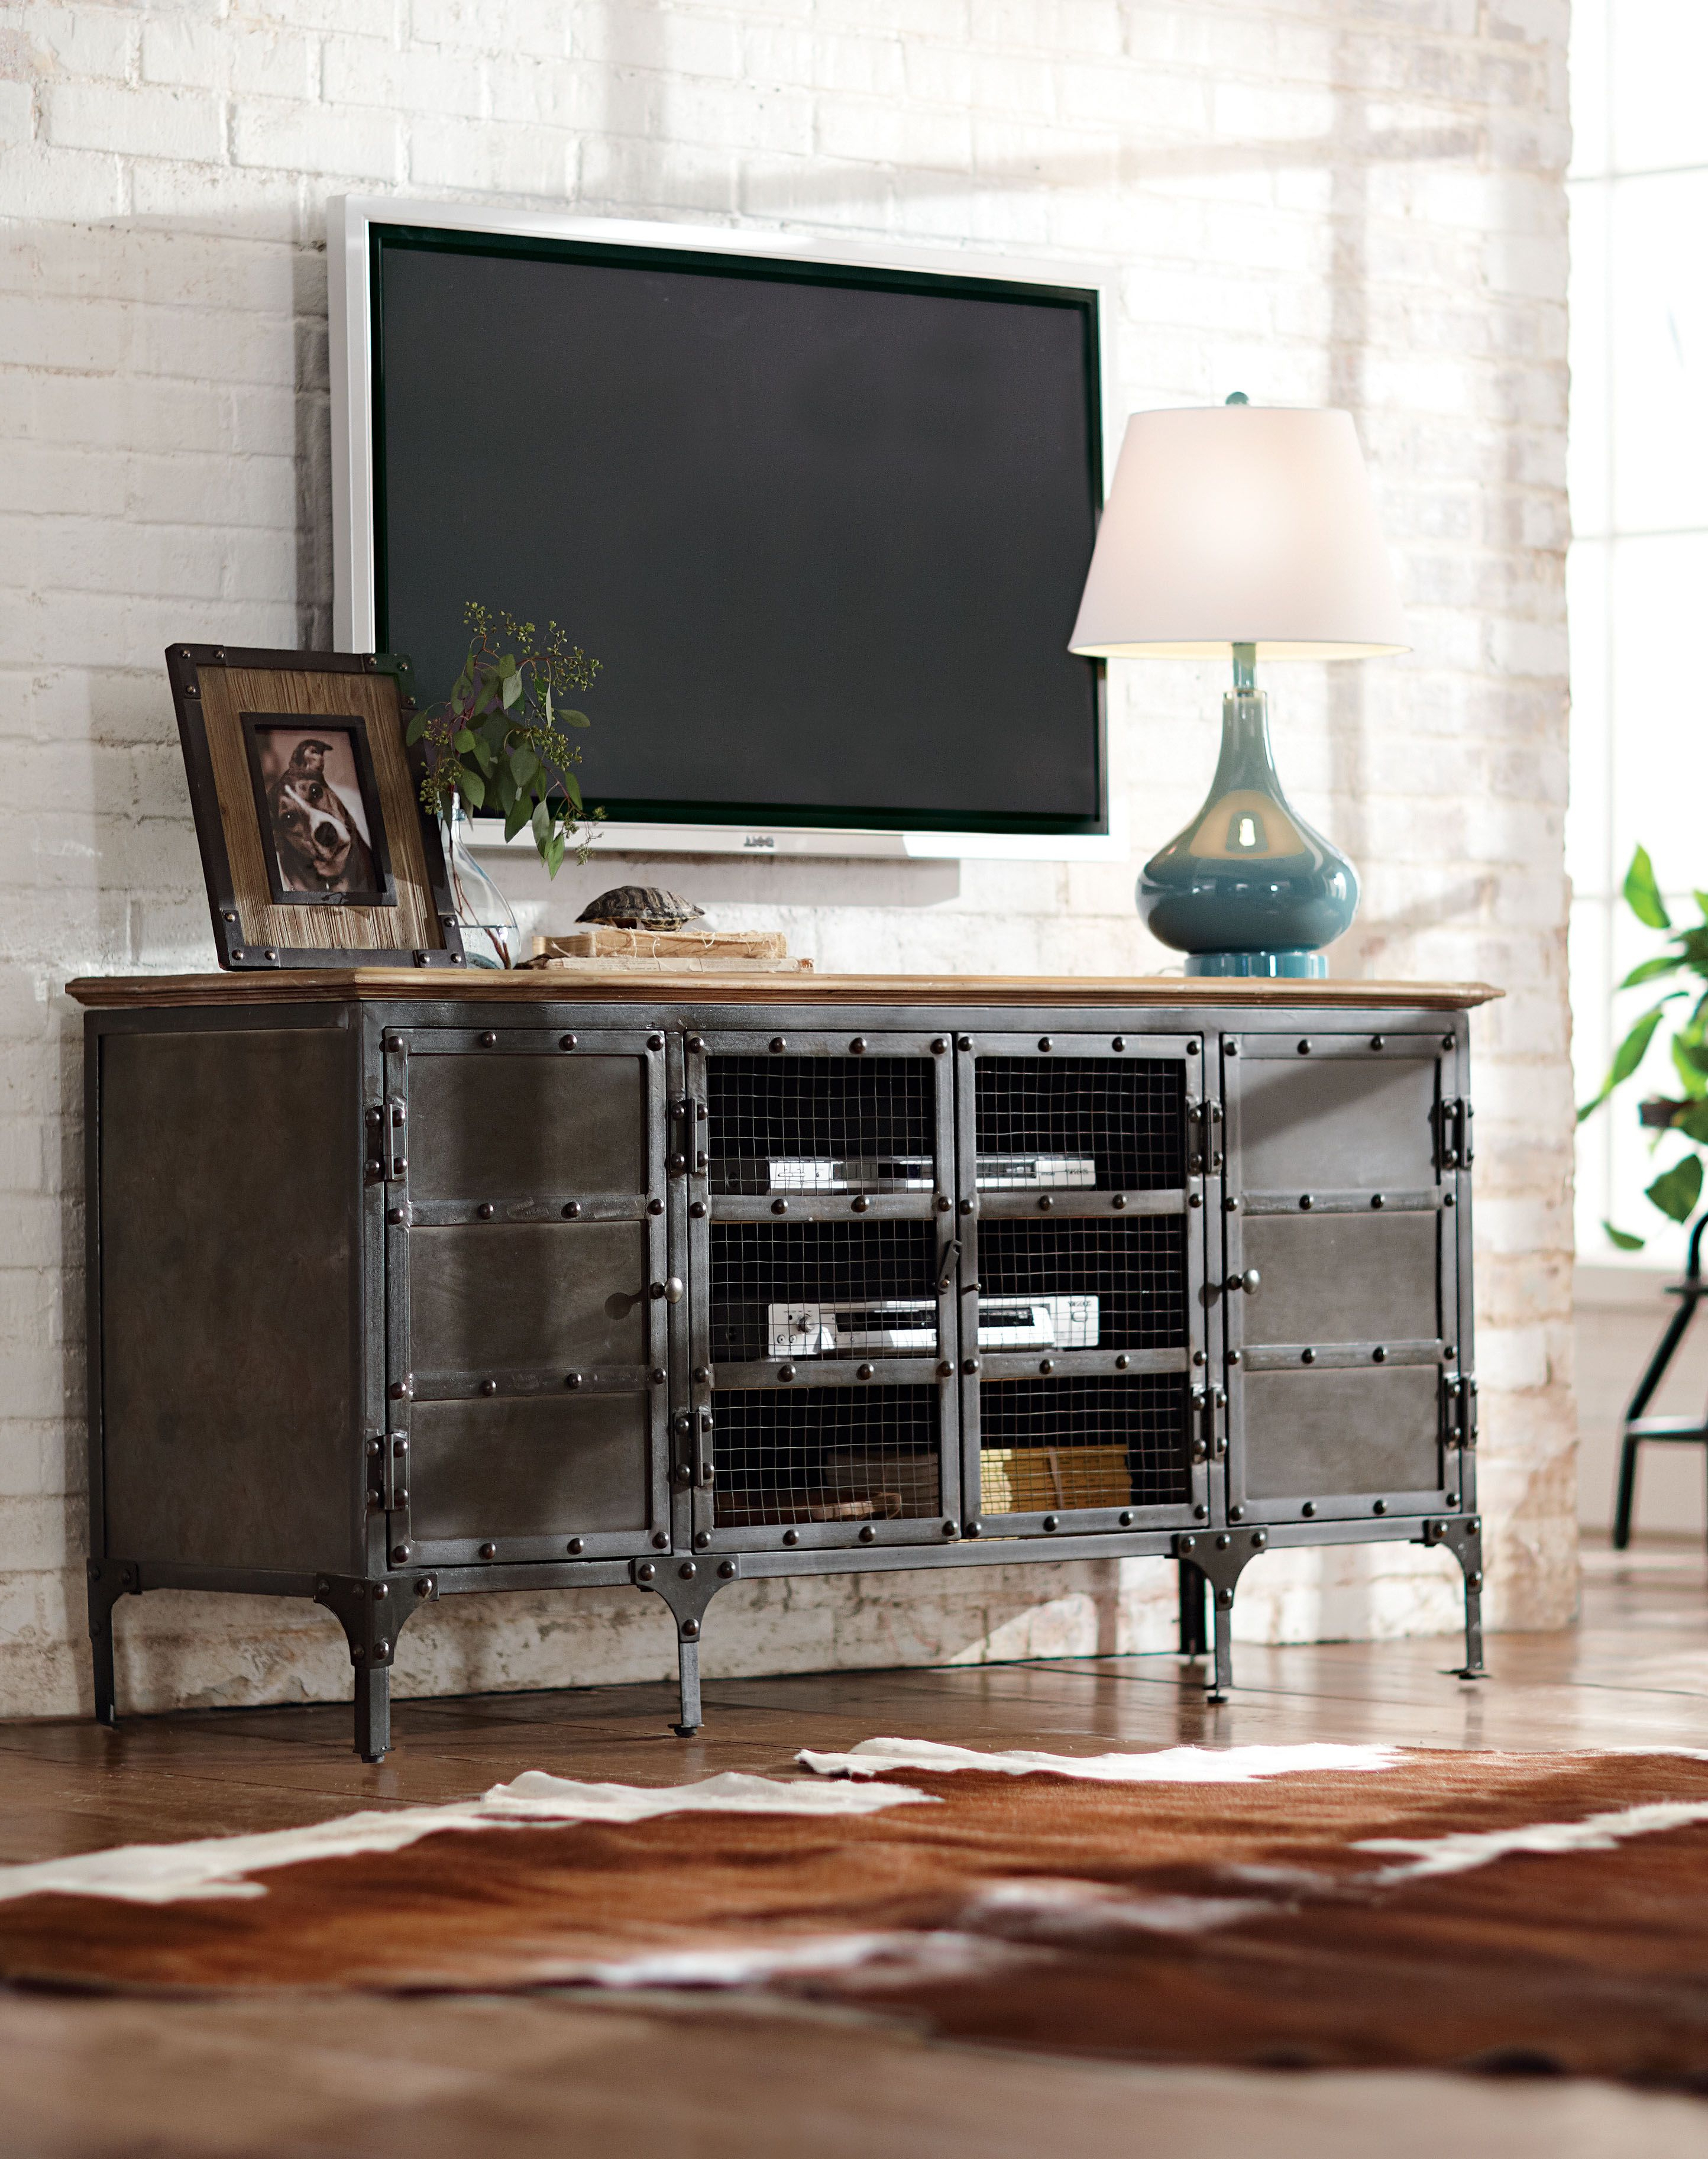 Recent Tv Stand Made Stylish (View 17 of 20)